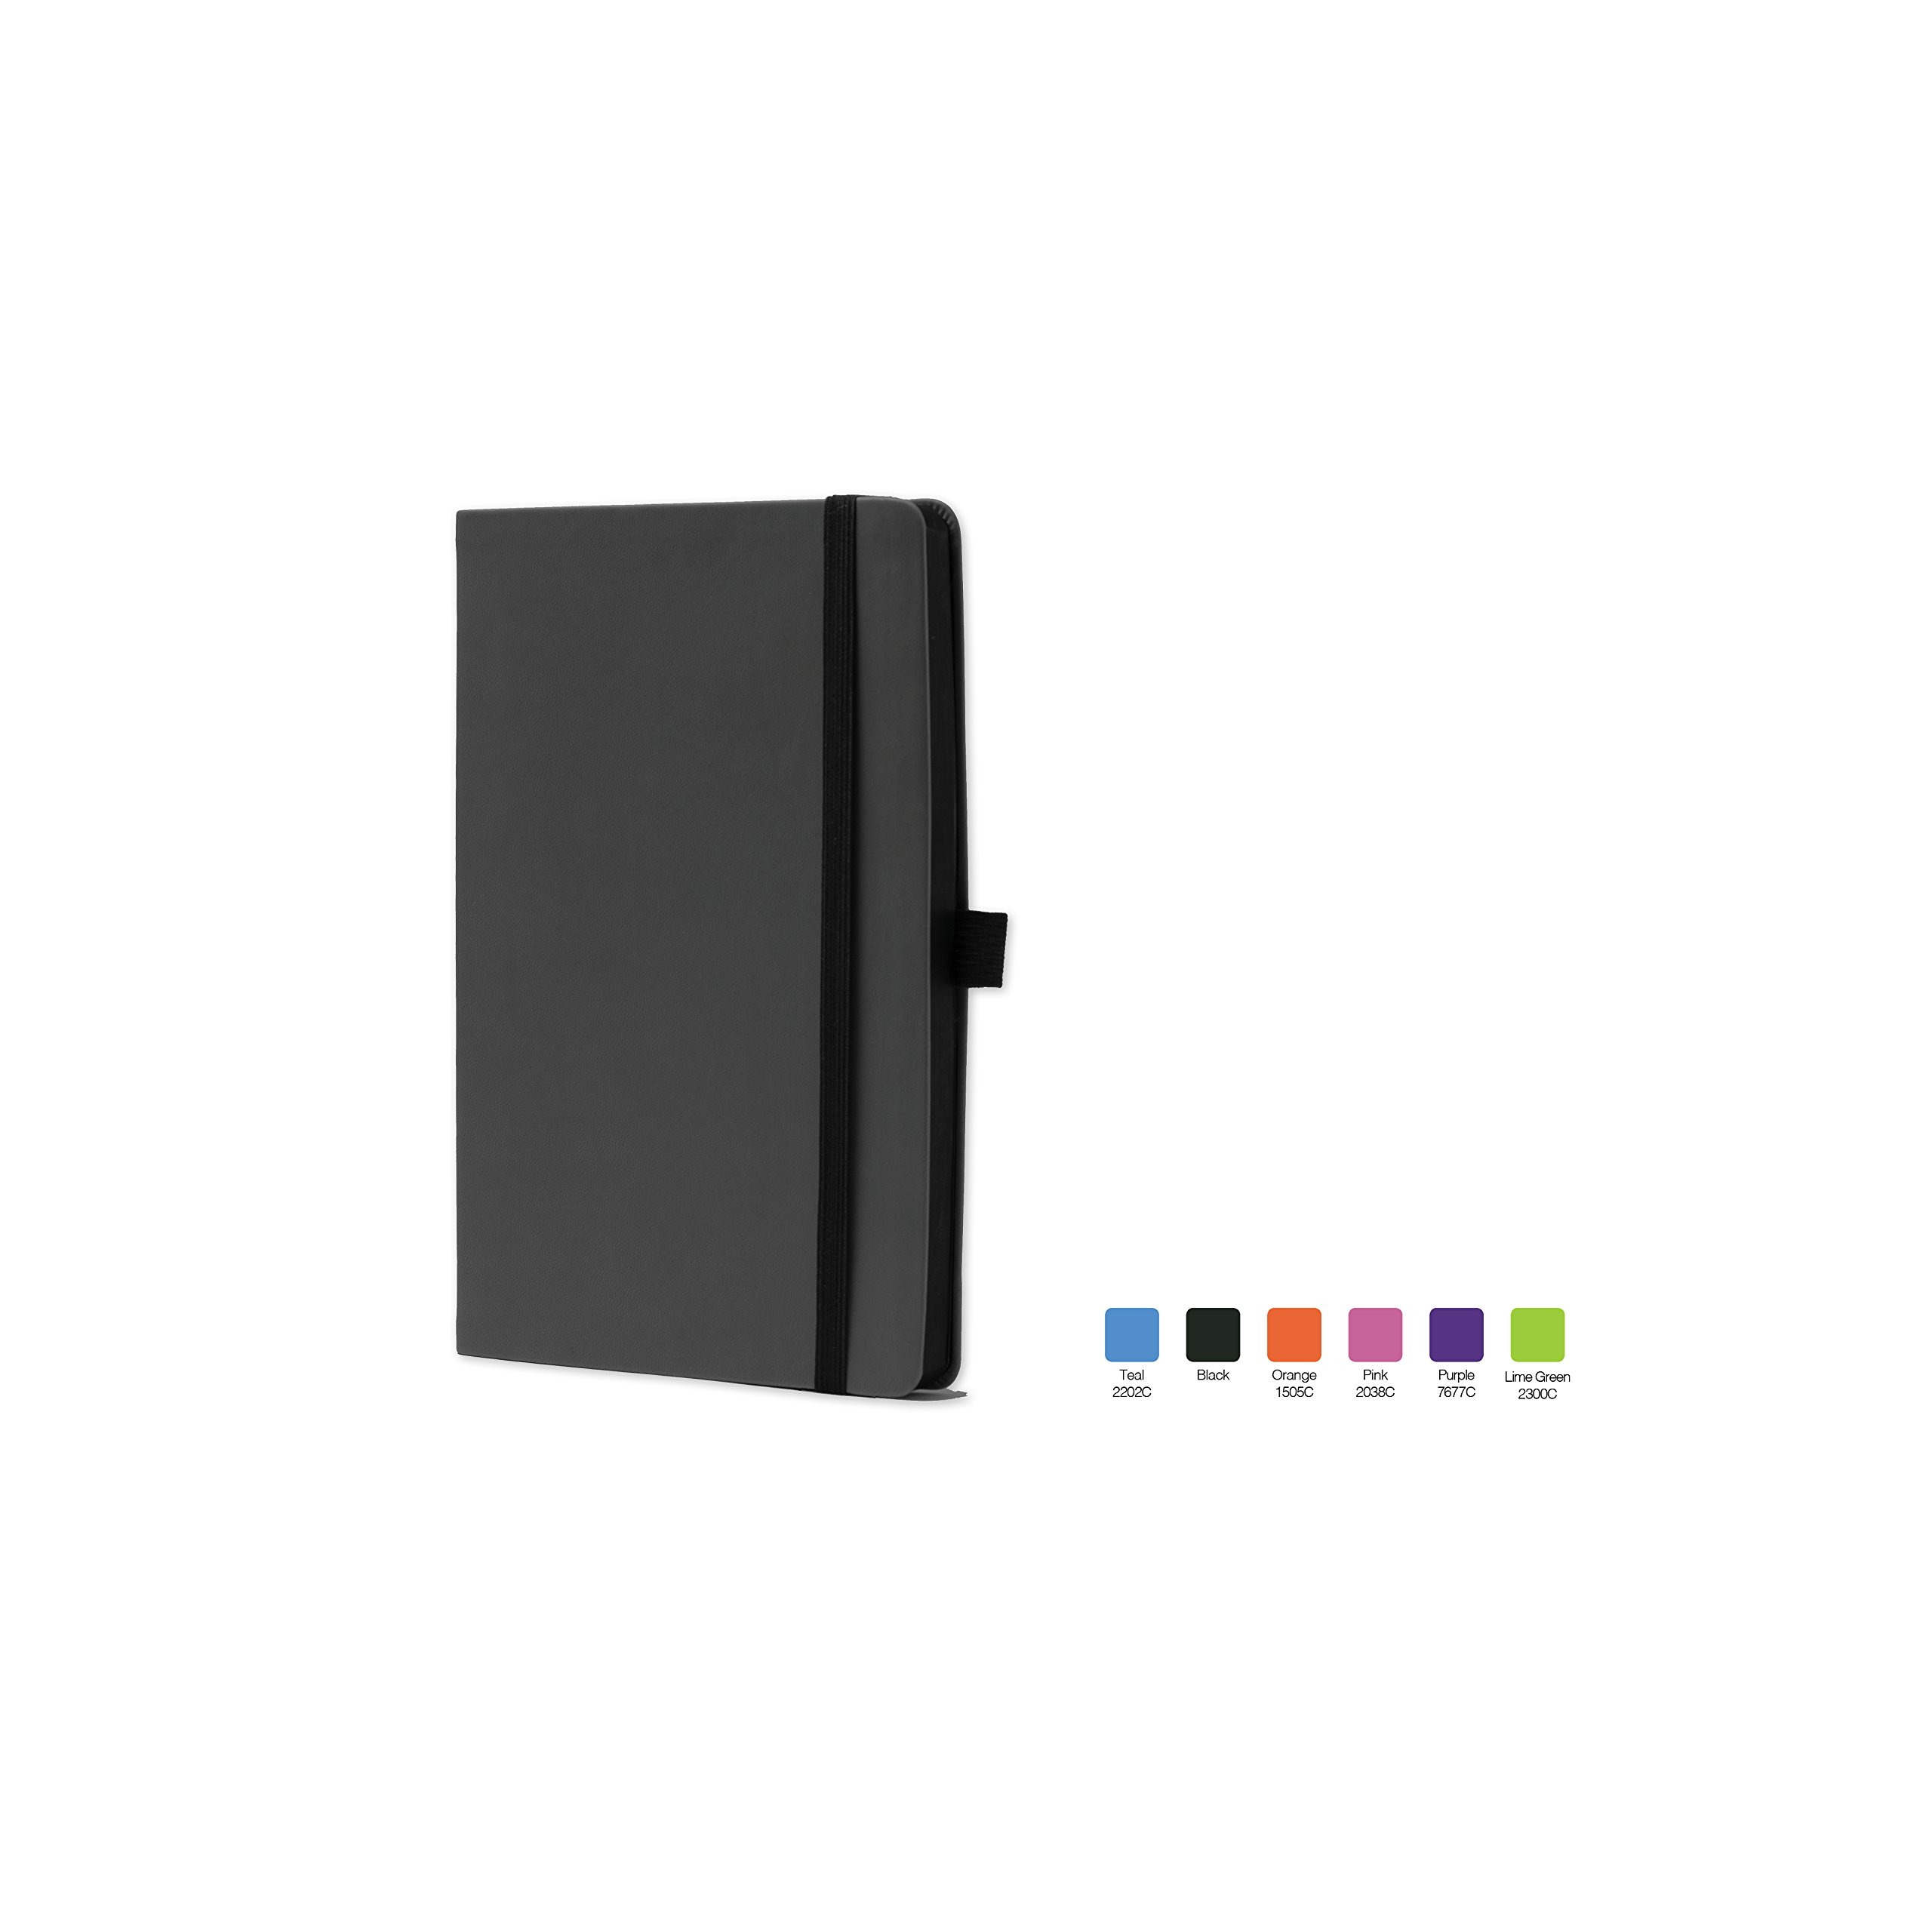 CALYPSO Ruled, Flexicover Notebook Journal with Premium Paper, 192 Lined Pages, Pen loop, Bookmark ribbon, Gusseted back pocket, Black Cover, Size 5.5'' x 8.5''